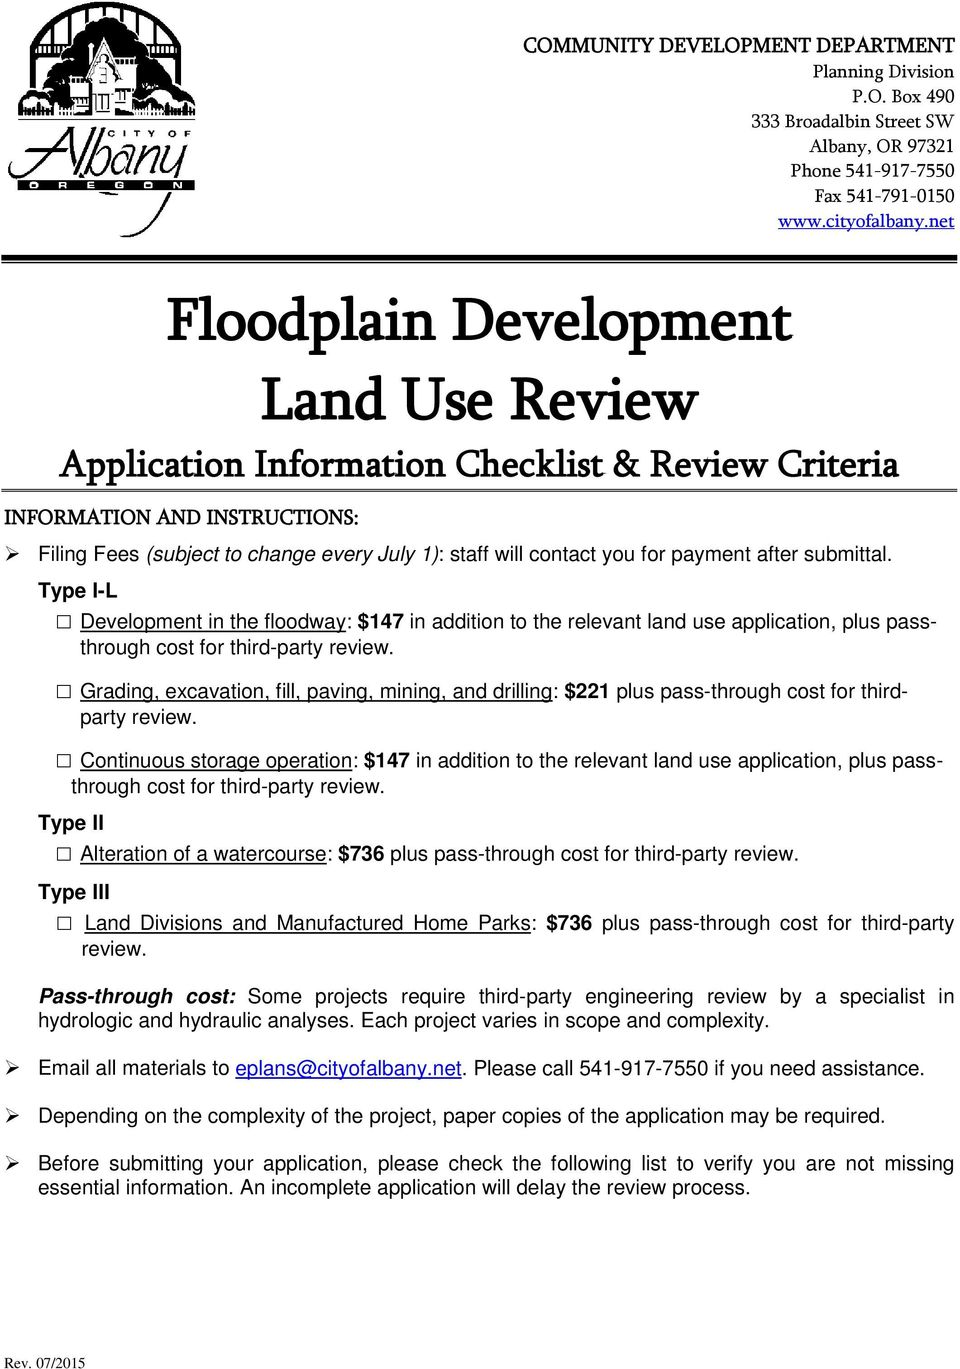 payment after submittal. Type I-L Development in the floodway: $147 in addition to the relevant land use application, plus passthrough cost for third-party review.